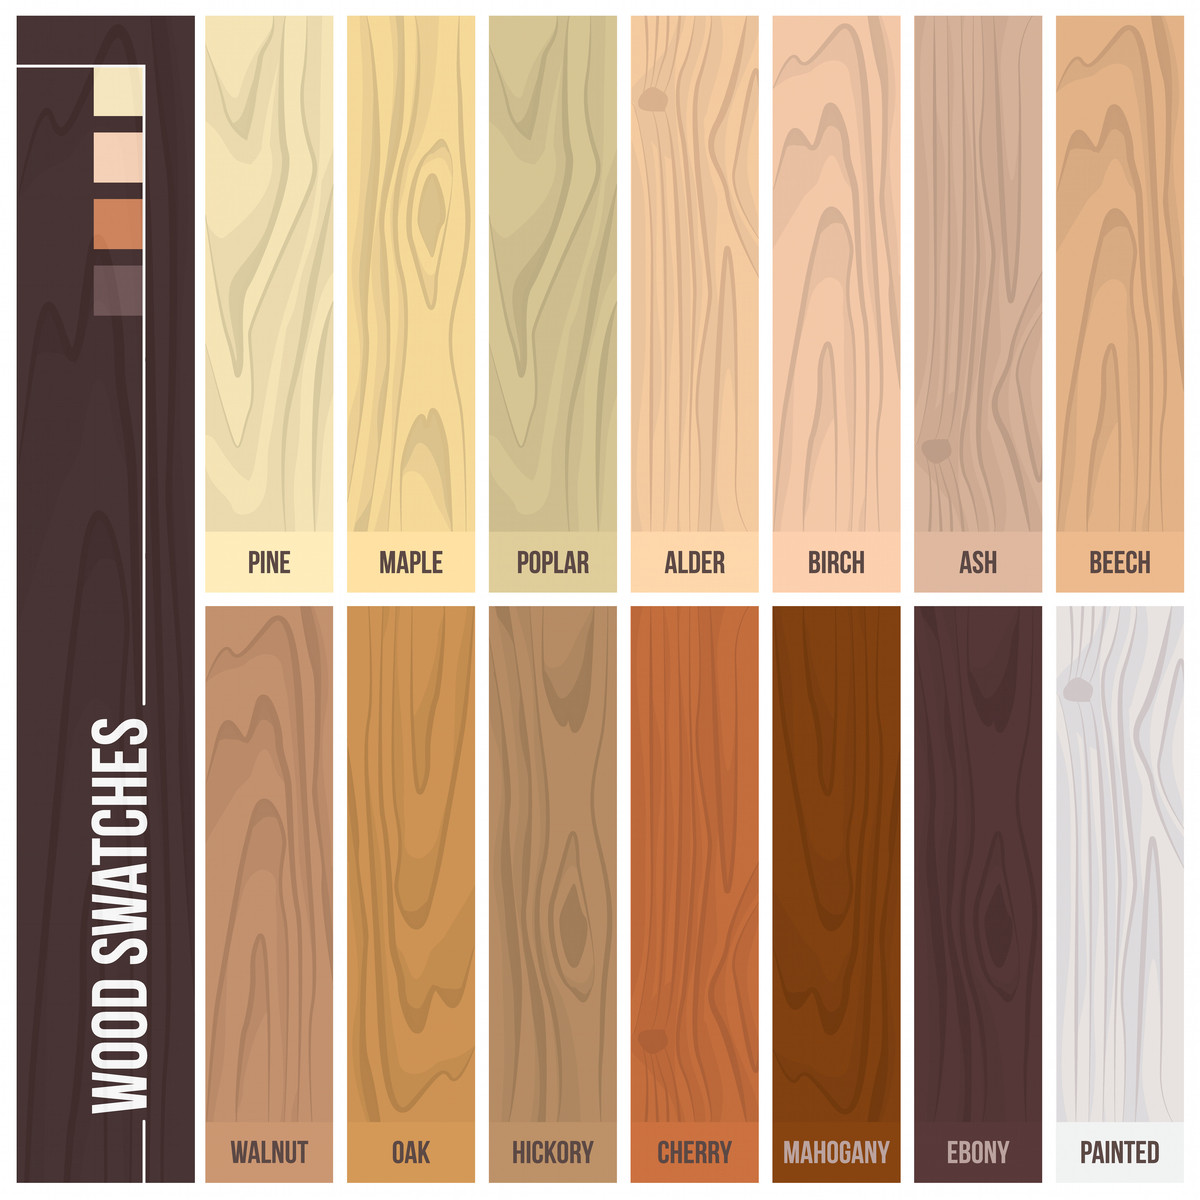 Hardwood Flooring Options and Cost Of 12 Types Of Hardwood Flooring Species Styles Edging Dimensions Pertaining to Types Of Hardwood Flooring Illustrated Guide